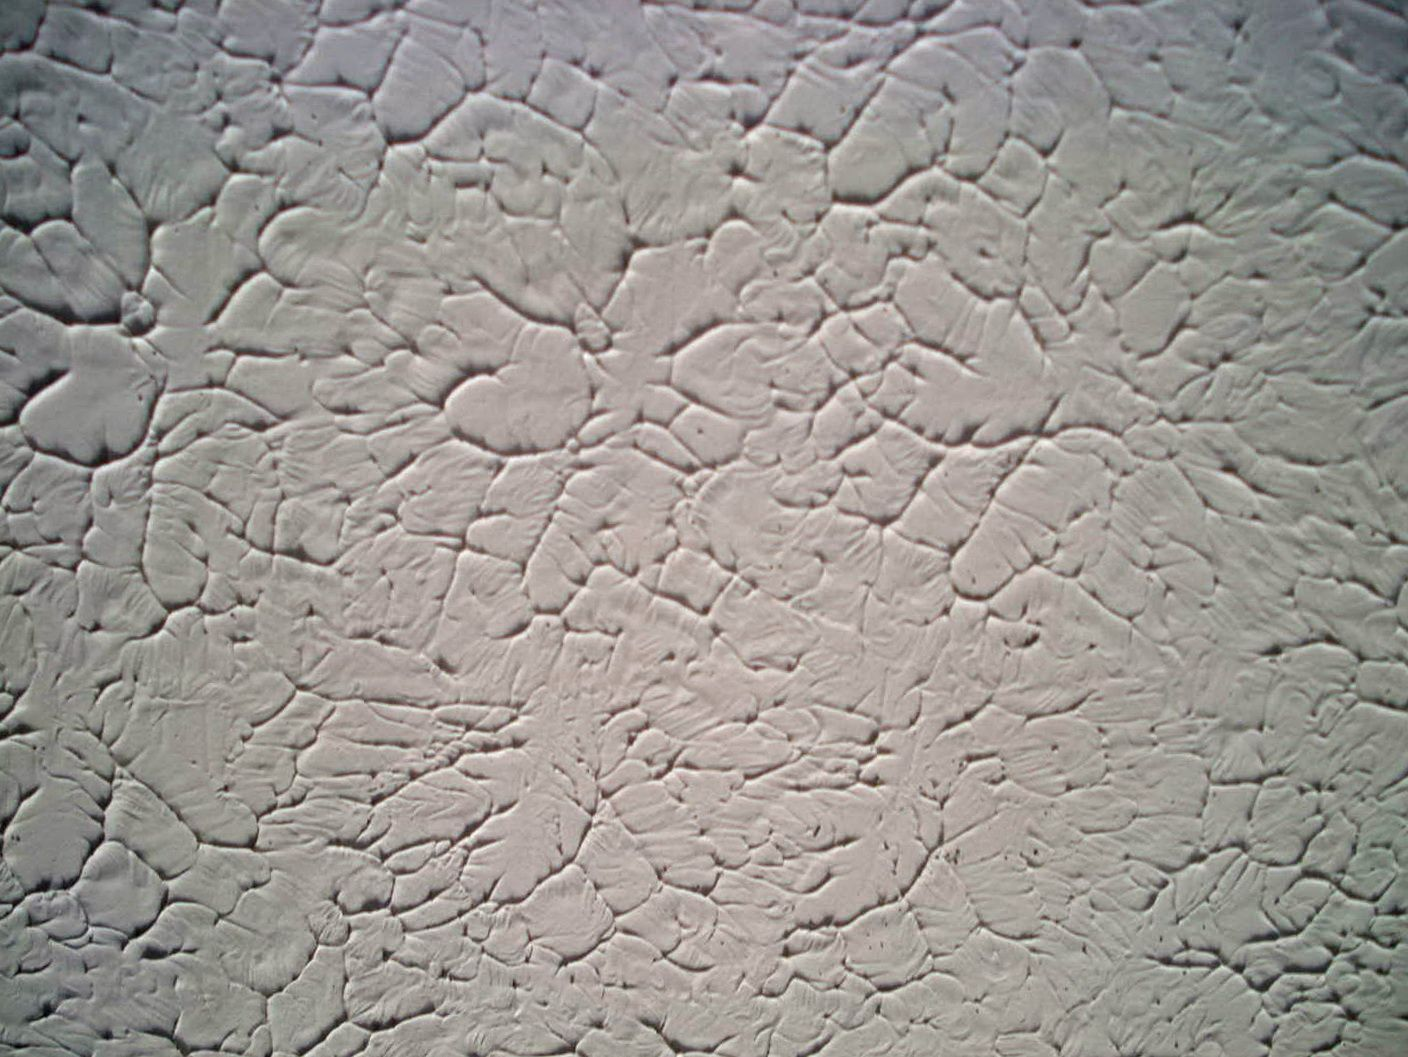 20 Astonishing Ceiling Texture Types For Decorative Purposes Ceiling Texture Types Ceiling Texture Wall Texture Types